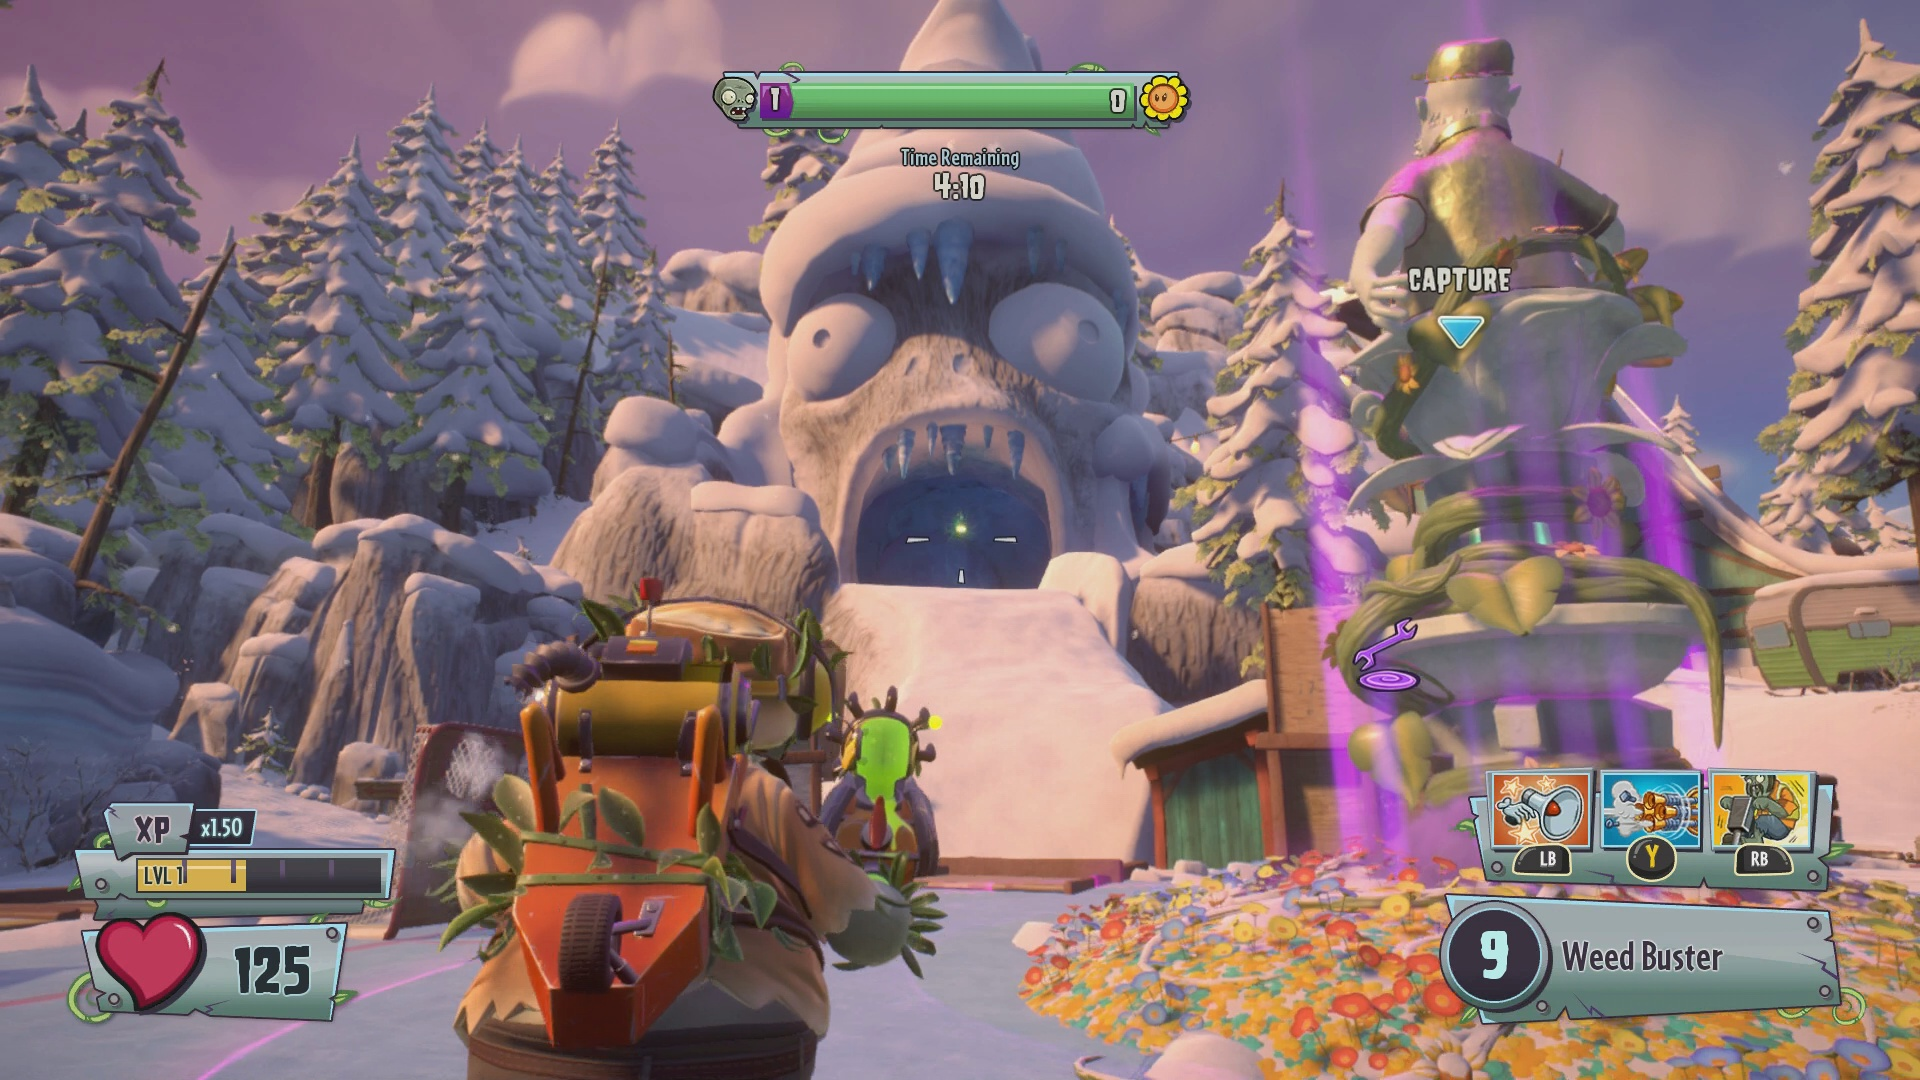 Plants Vs Zombies Garden Warfare 2 Golden Gnome Multiplayer Locations Usgamer